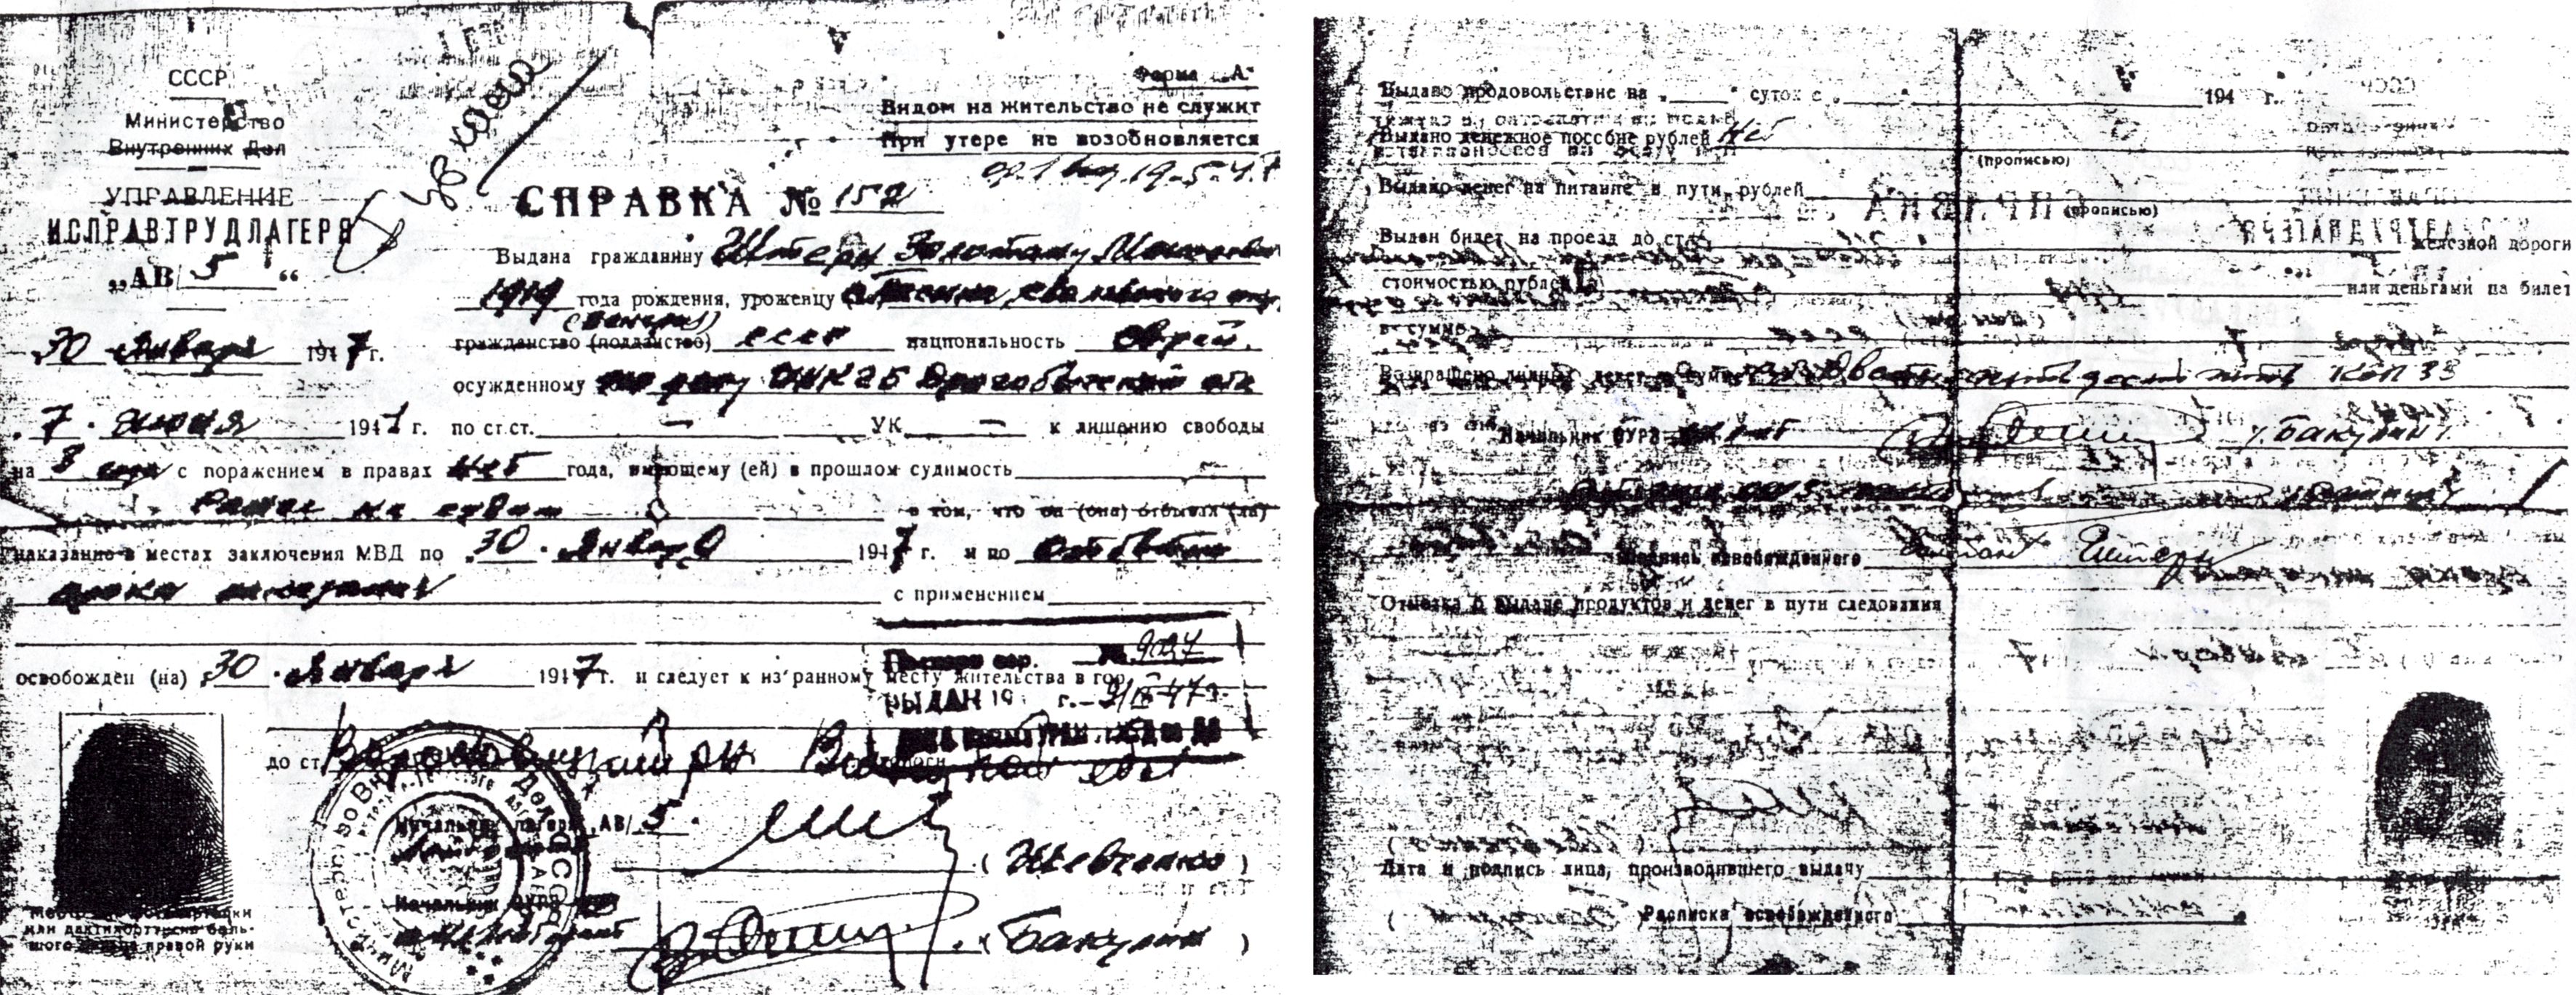 Zoltan Shterns Certificate Of Release From Gulag Camp Centropa